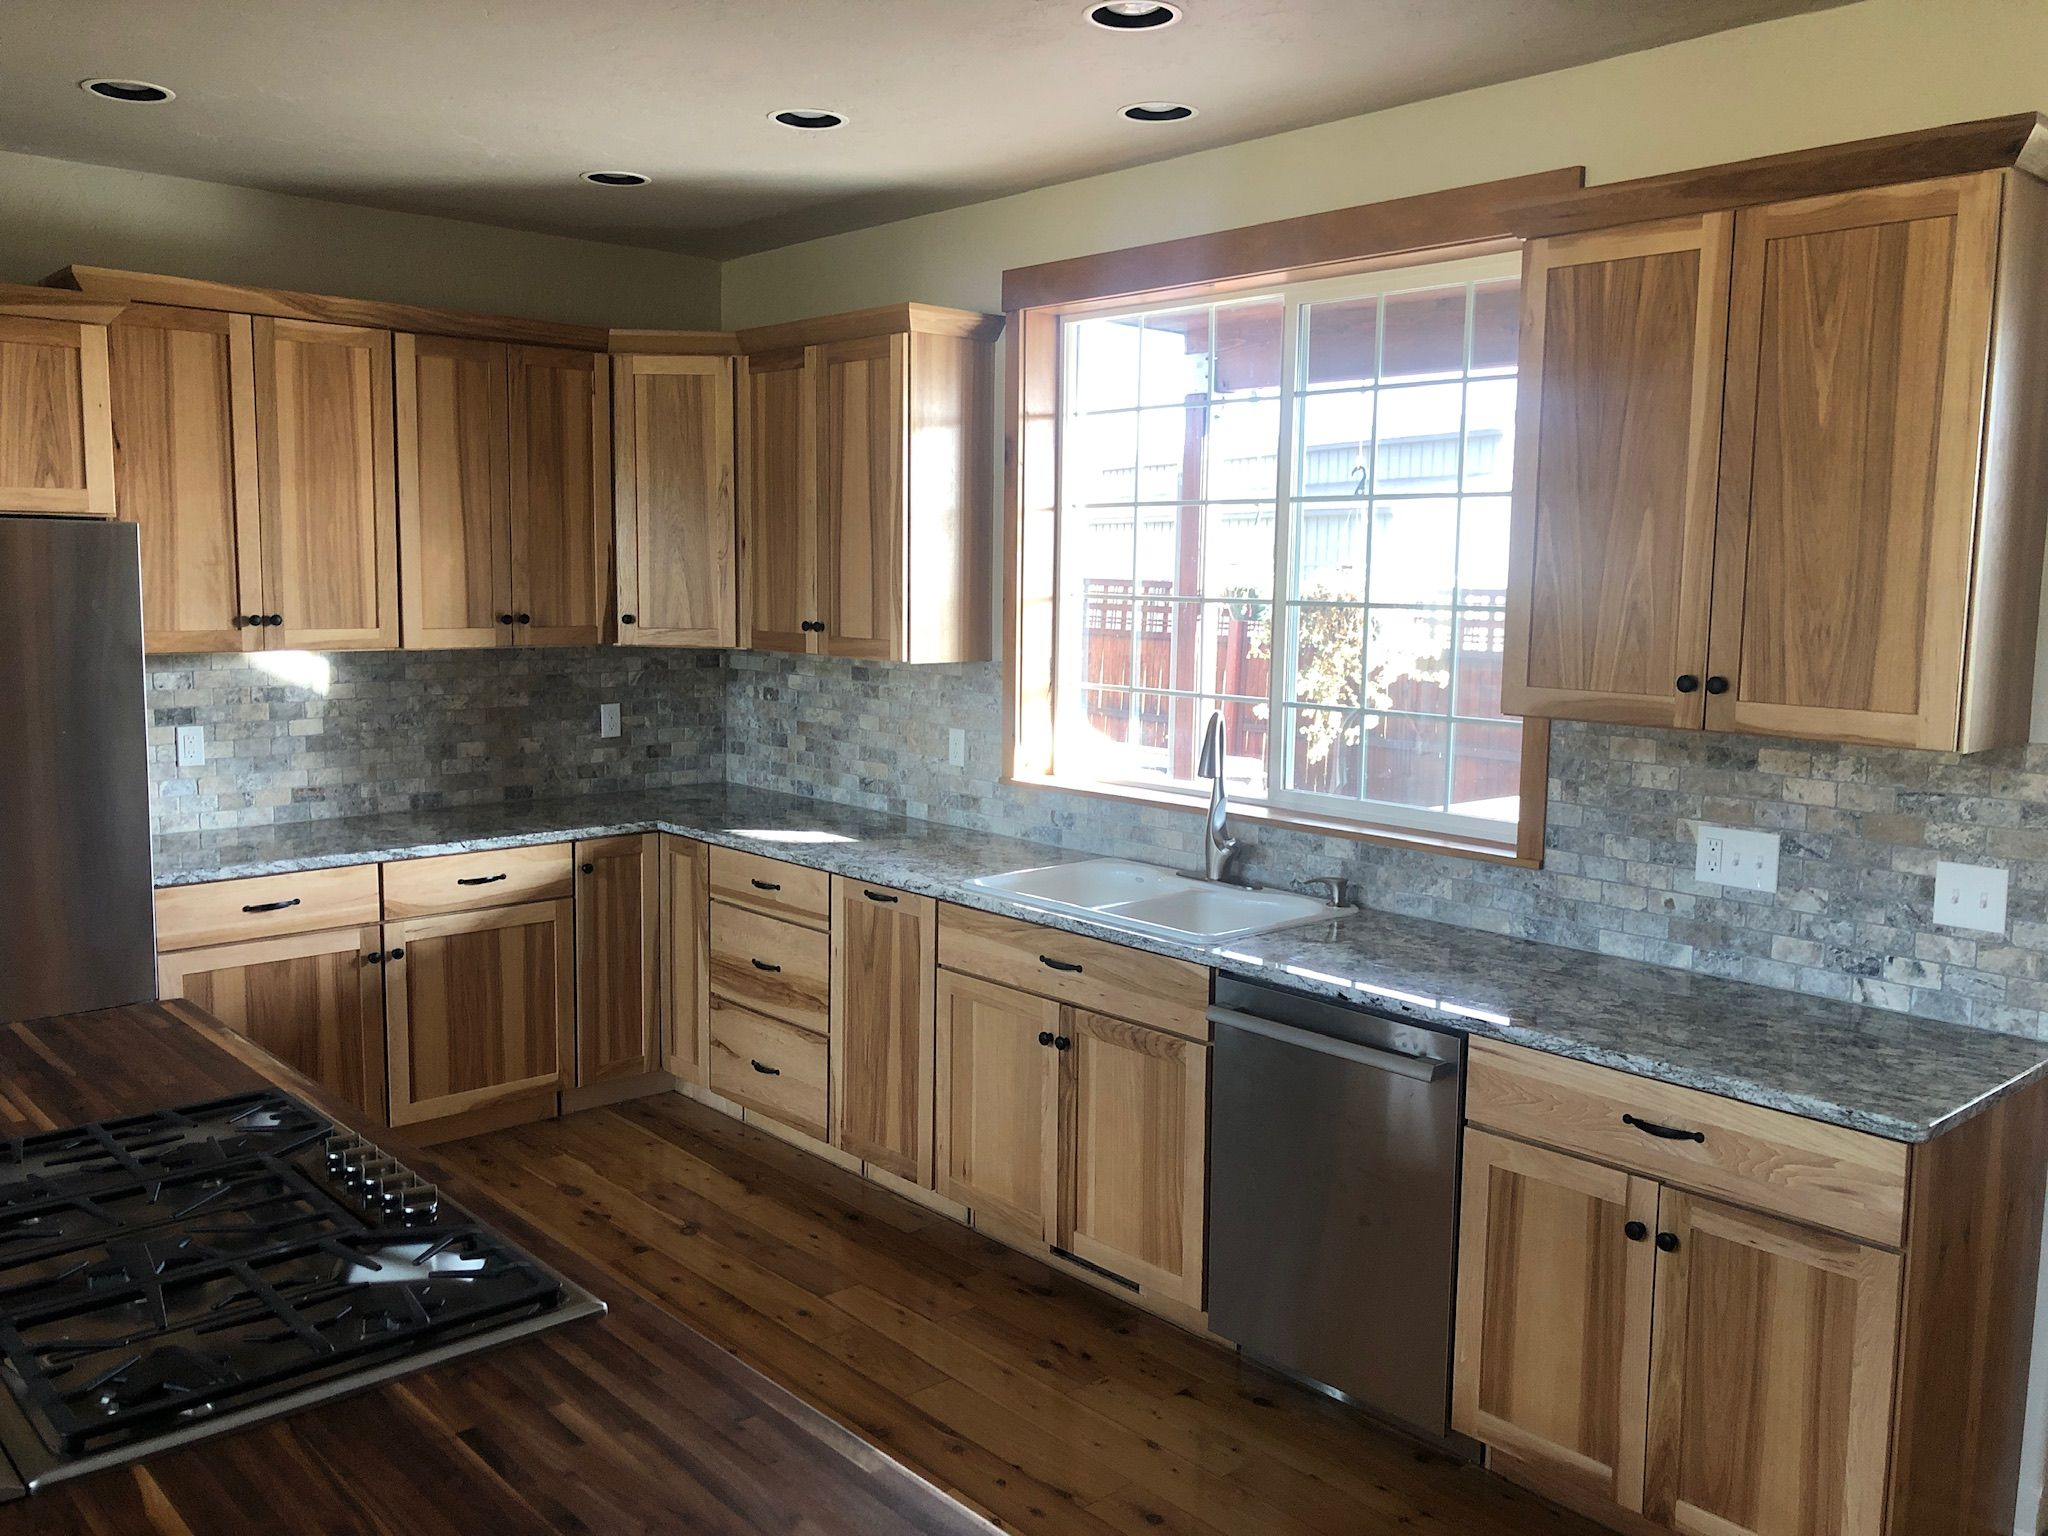 Rustic Kitchen Remodel By Precision Countertops In Portland Oregon In 2020 Rustic Kitchen Kitchen Remodel Kitchen